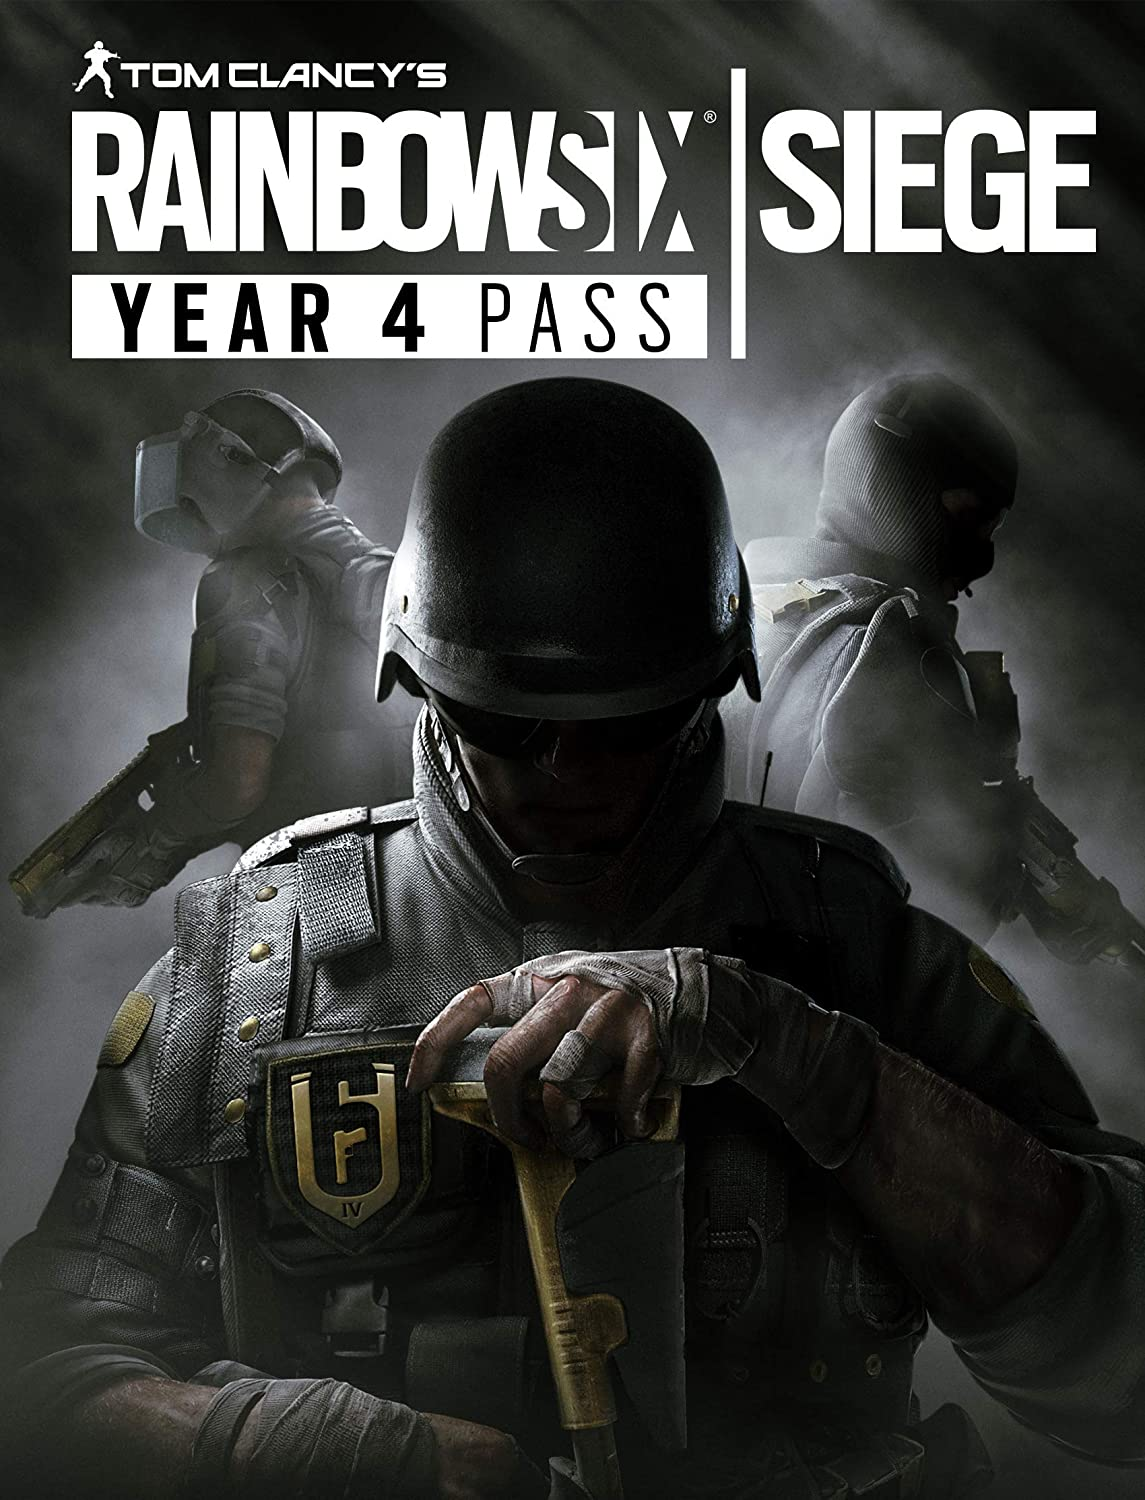 Tom Clancys Rainbow Six Siege - Year 4 Pass: Amazon.es: Videojuegos